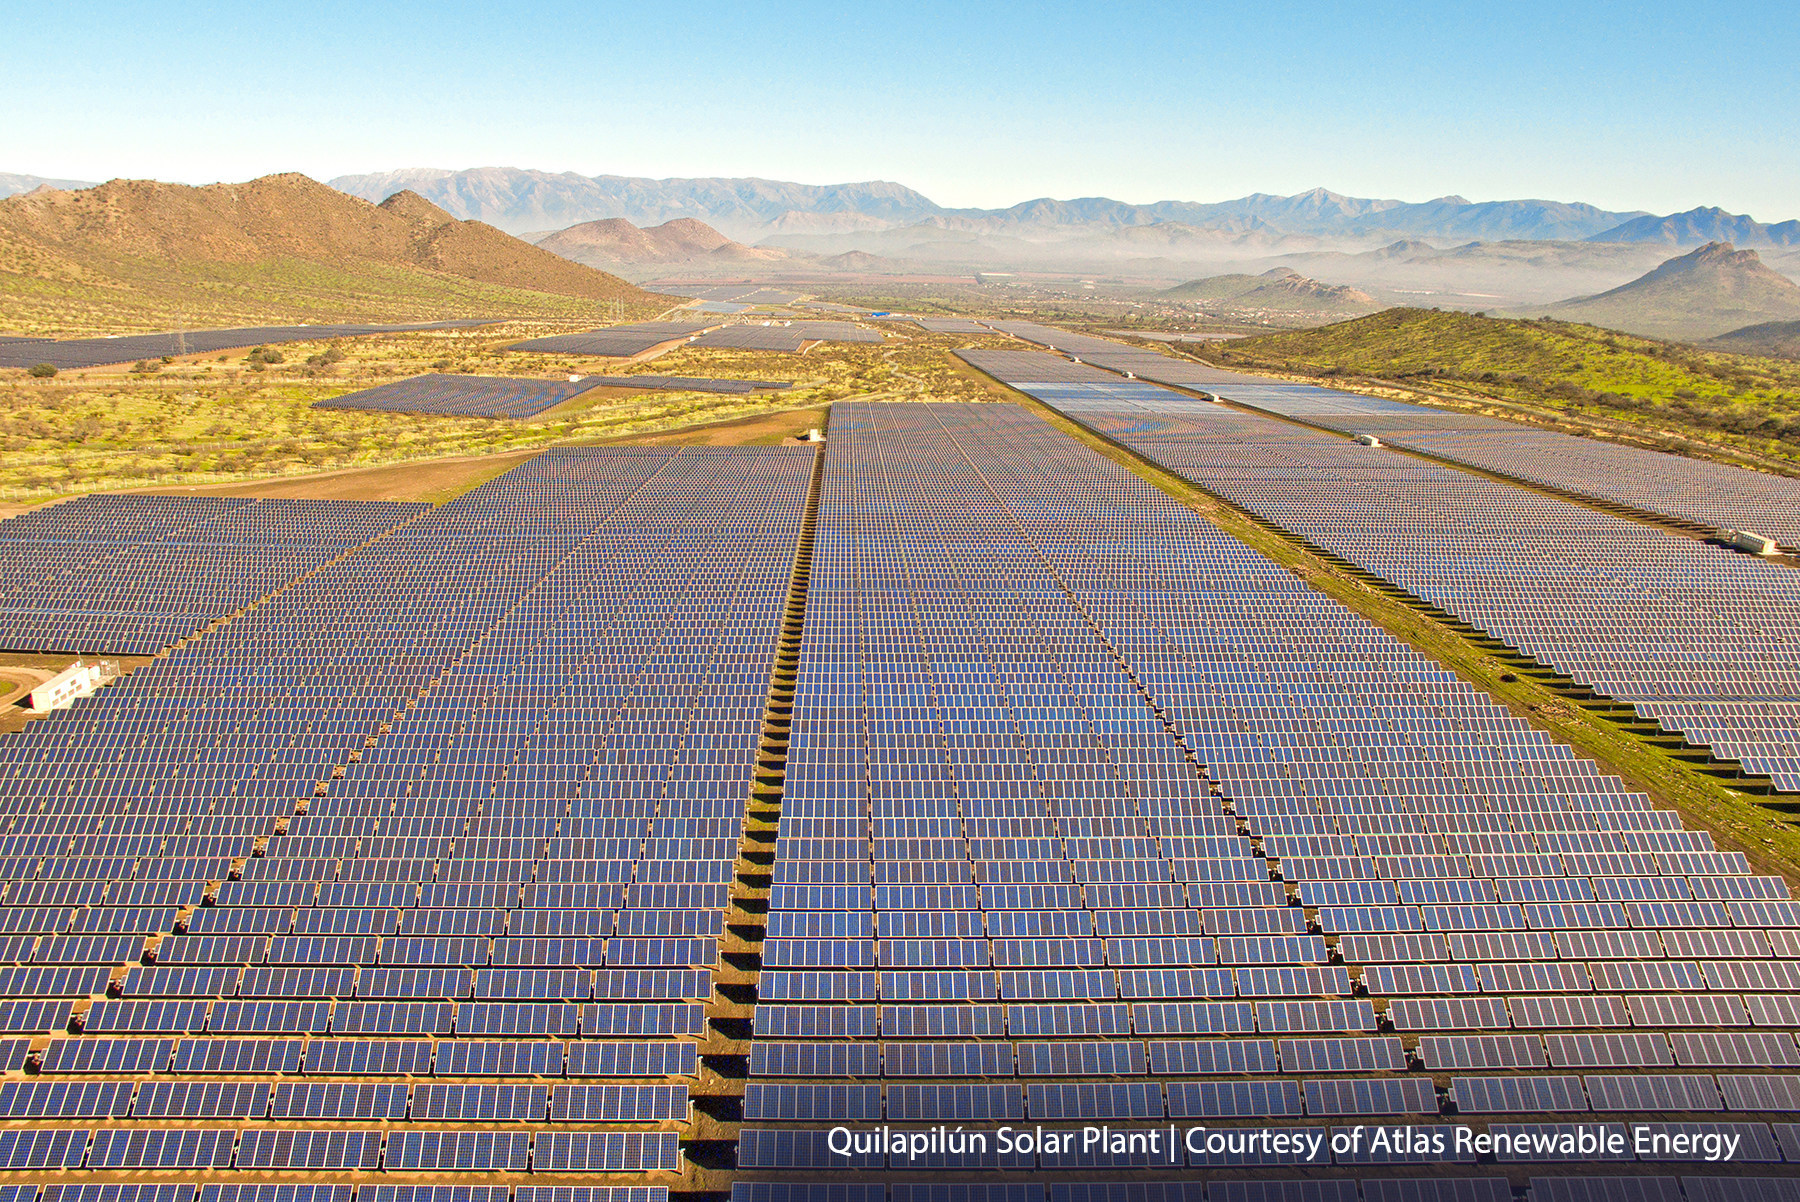 NEXTracker's NX Horizon smart solar tracker on Atlas Renewable Energy's solar plant in Quilapilun, Chile.